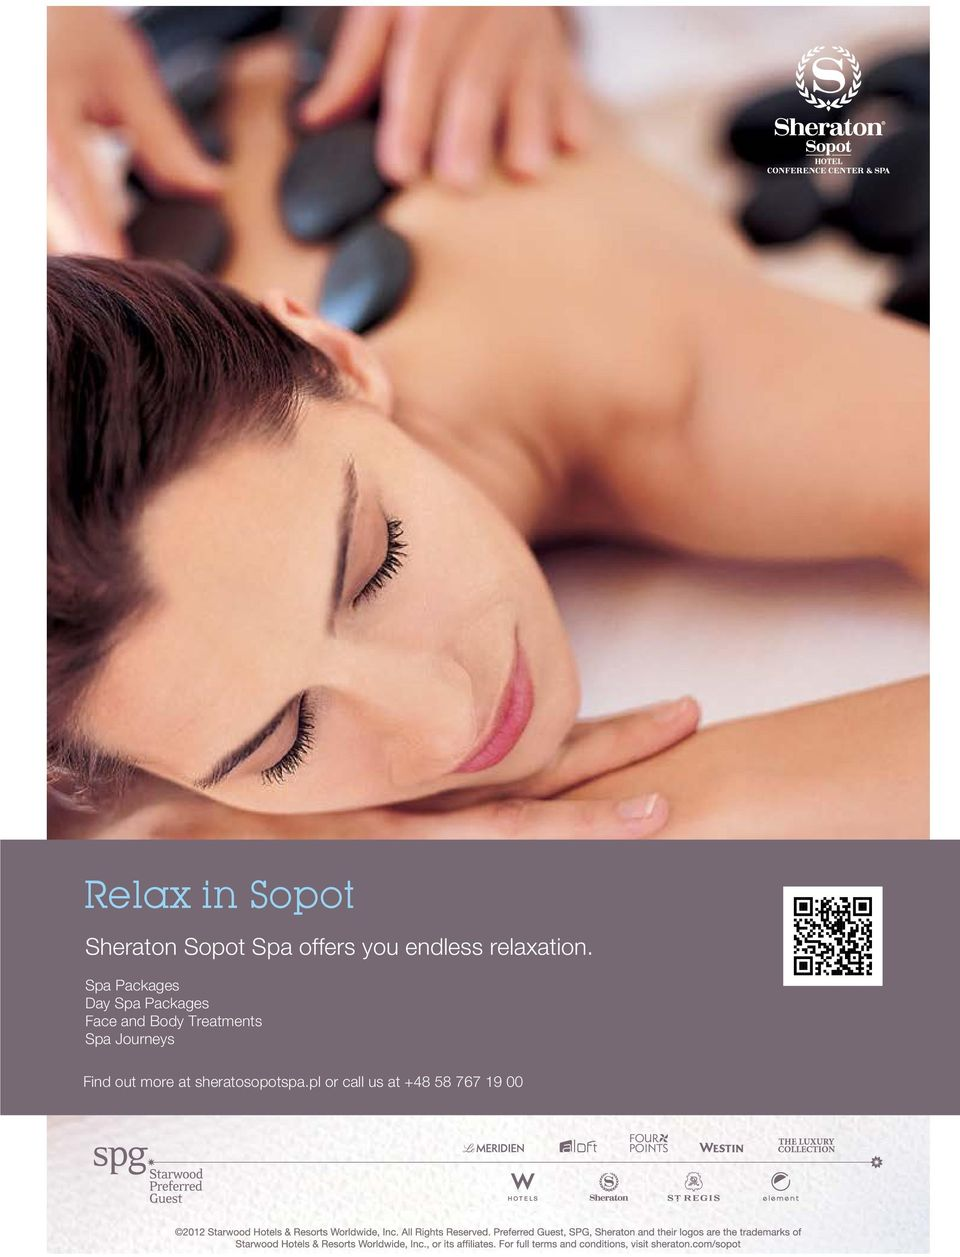 Spa Packages Day Spa Packages Face and Body